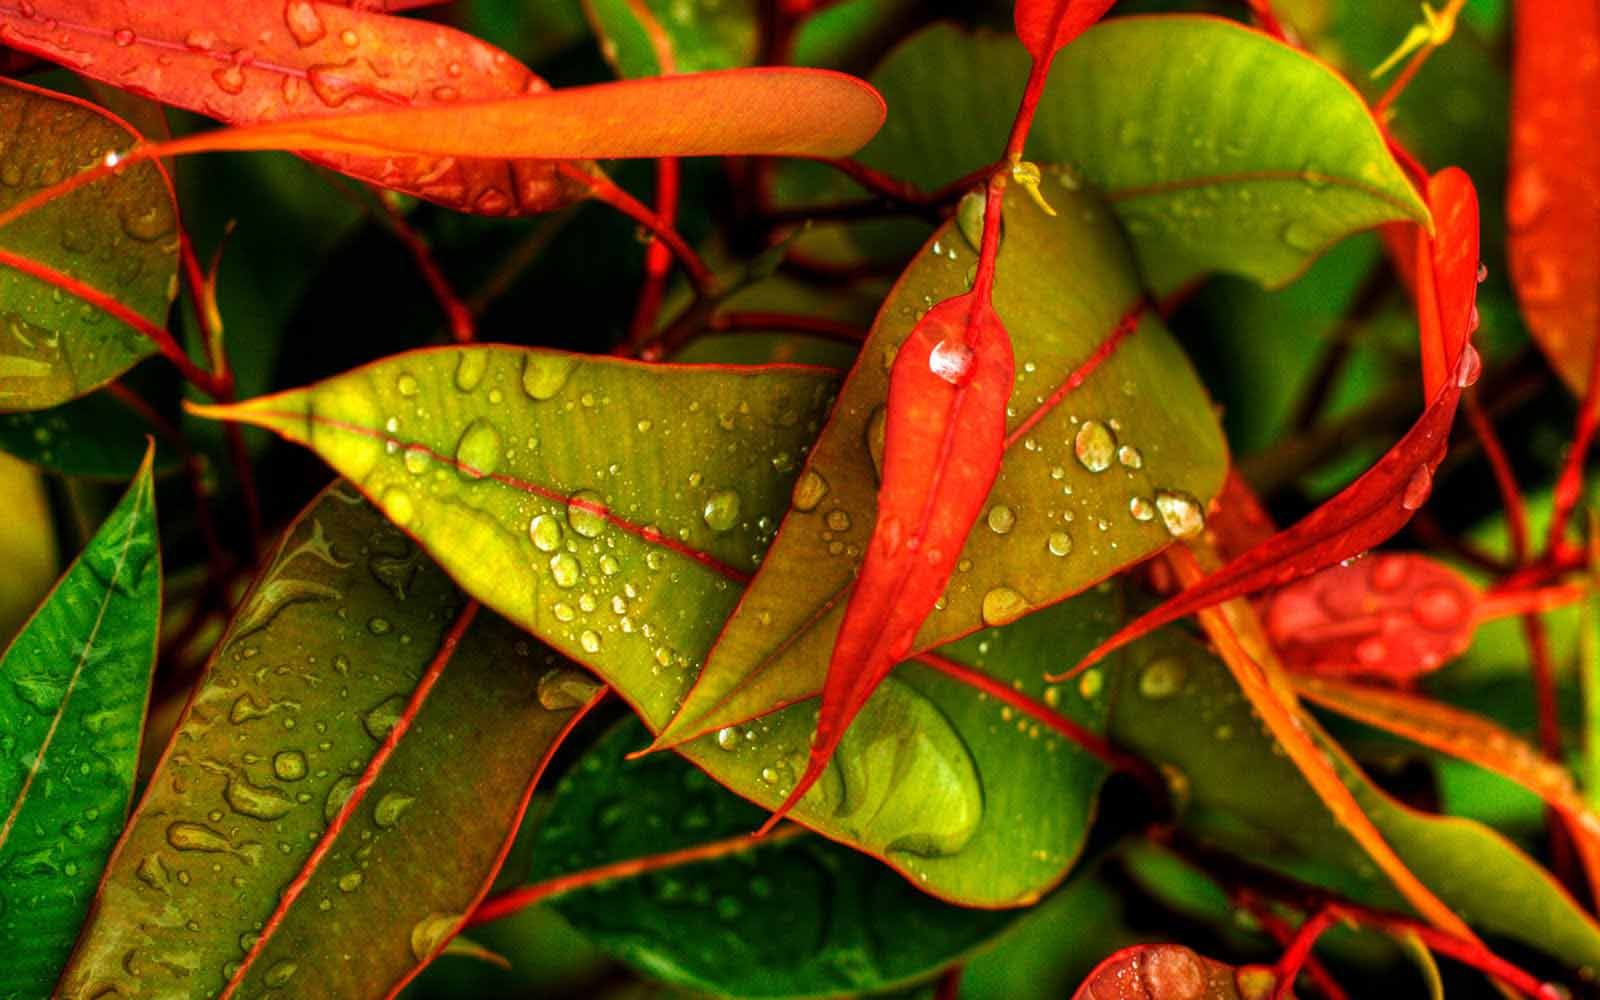 water drops on the leaves in the morning hd wallpaper